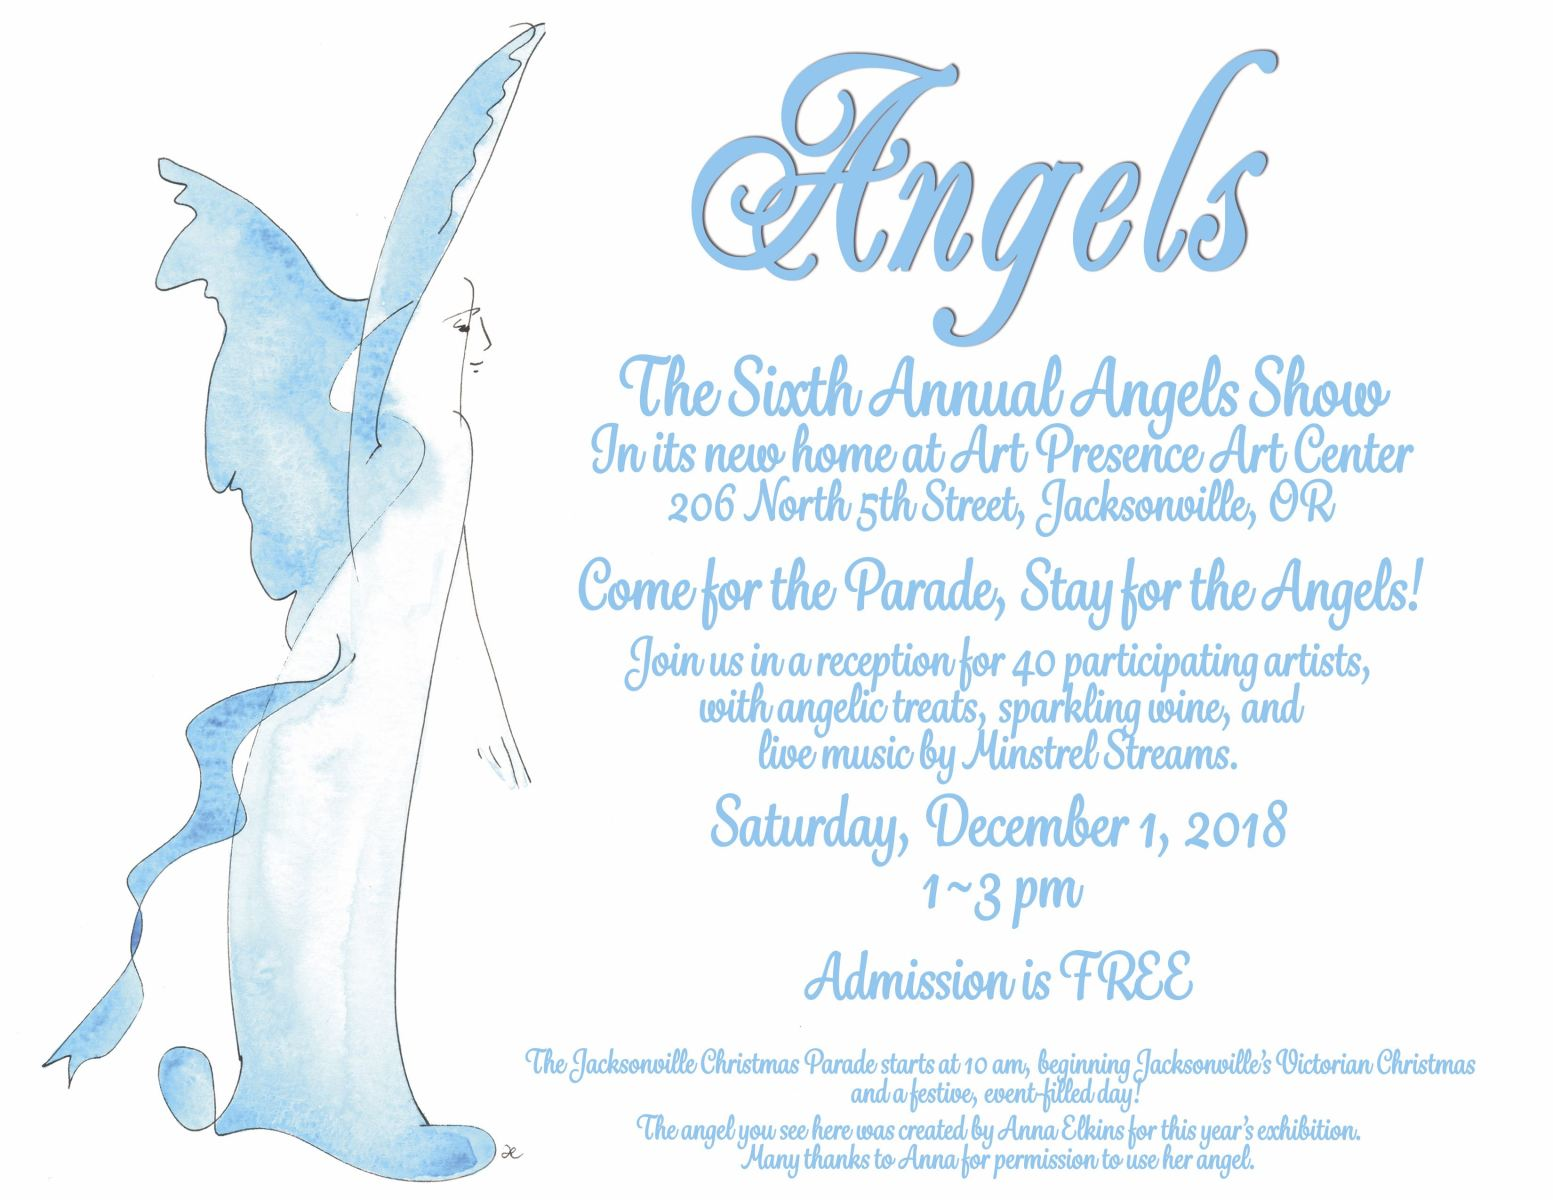 poster with information about the 2018 6th annual angels show at art presence art center